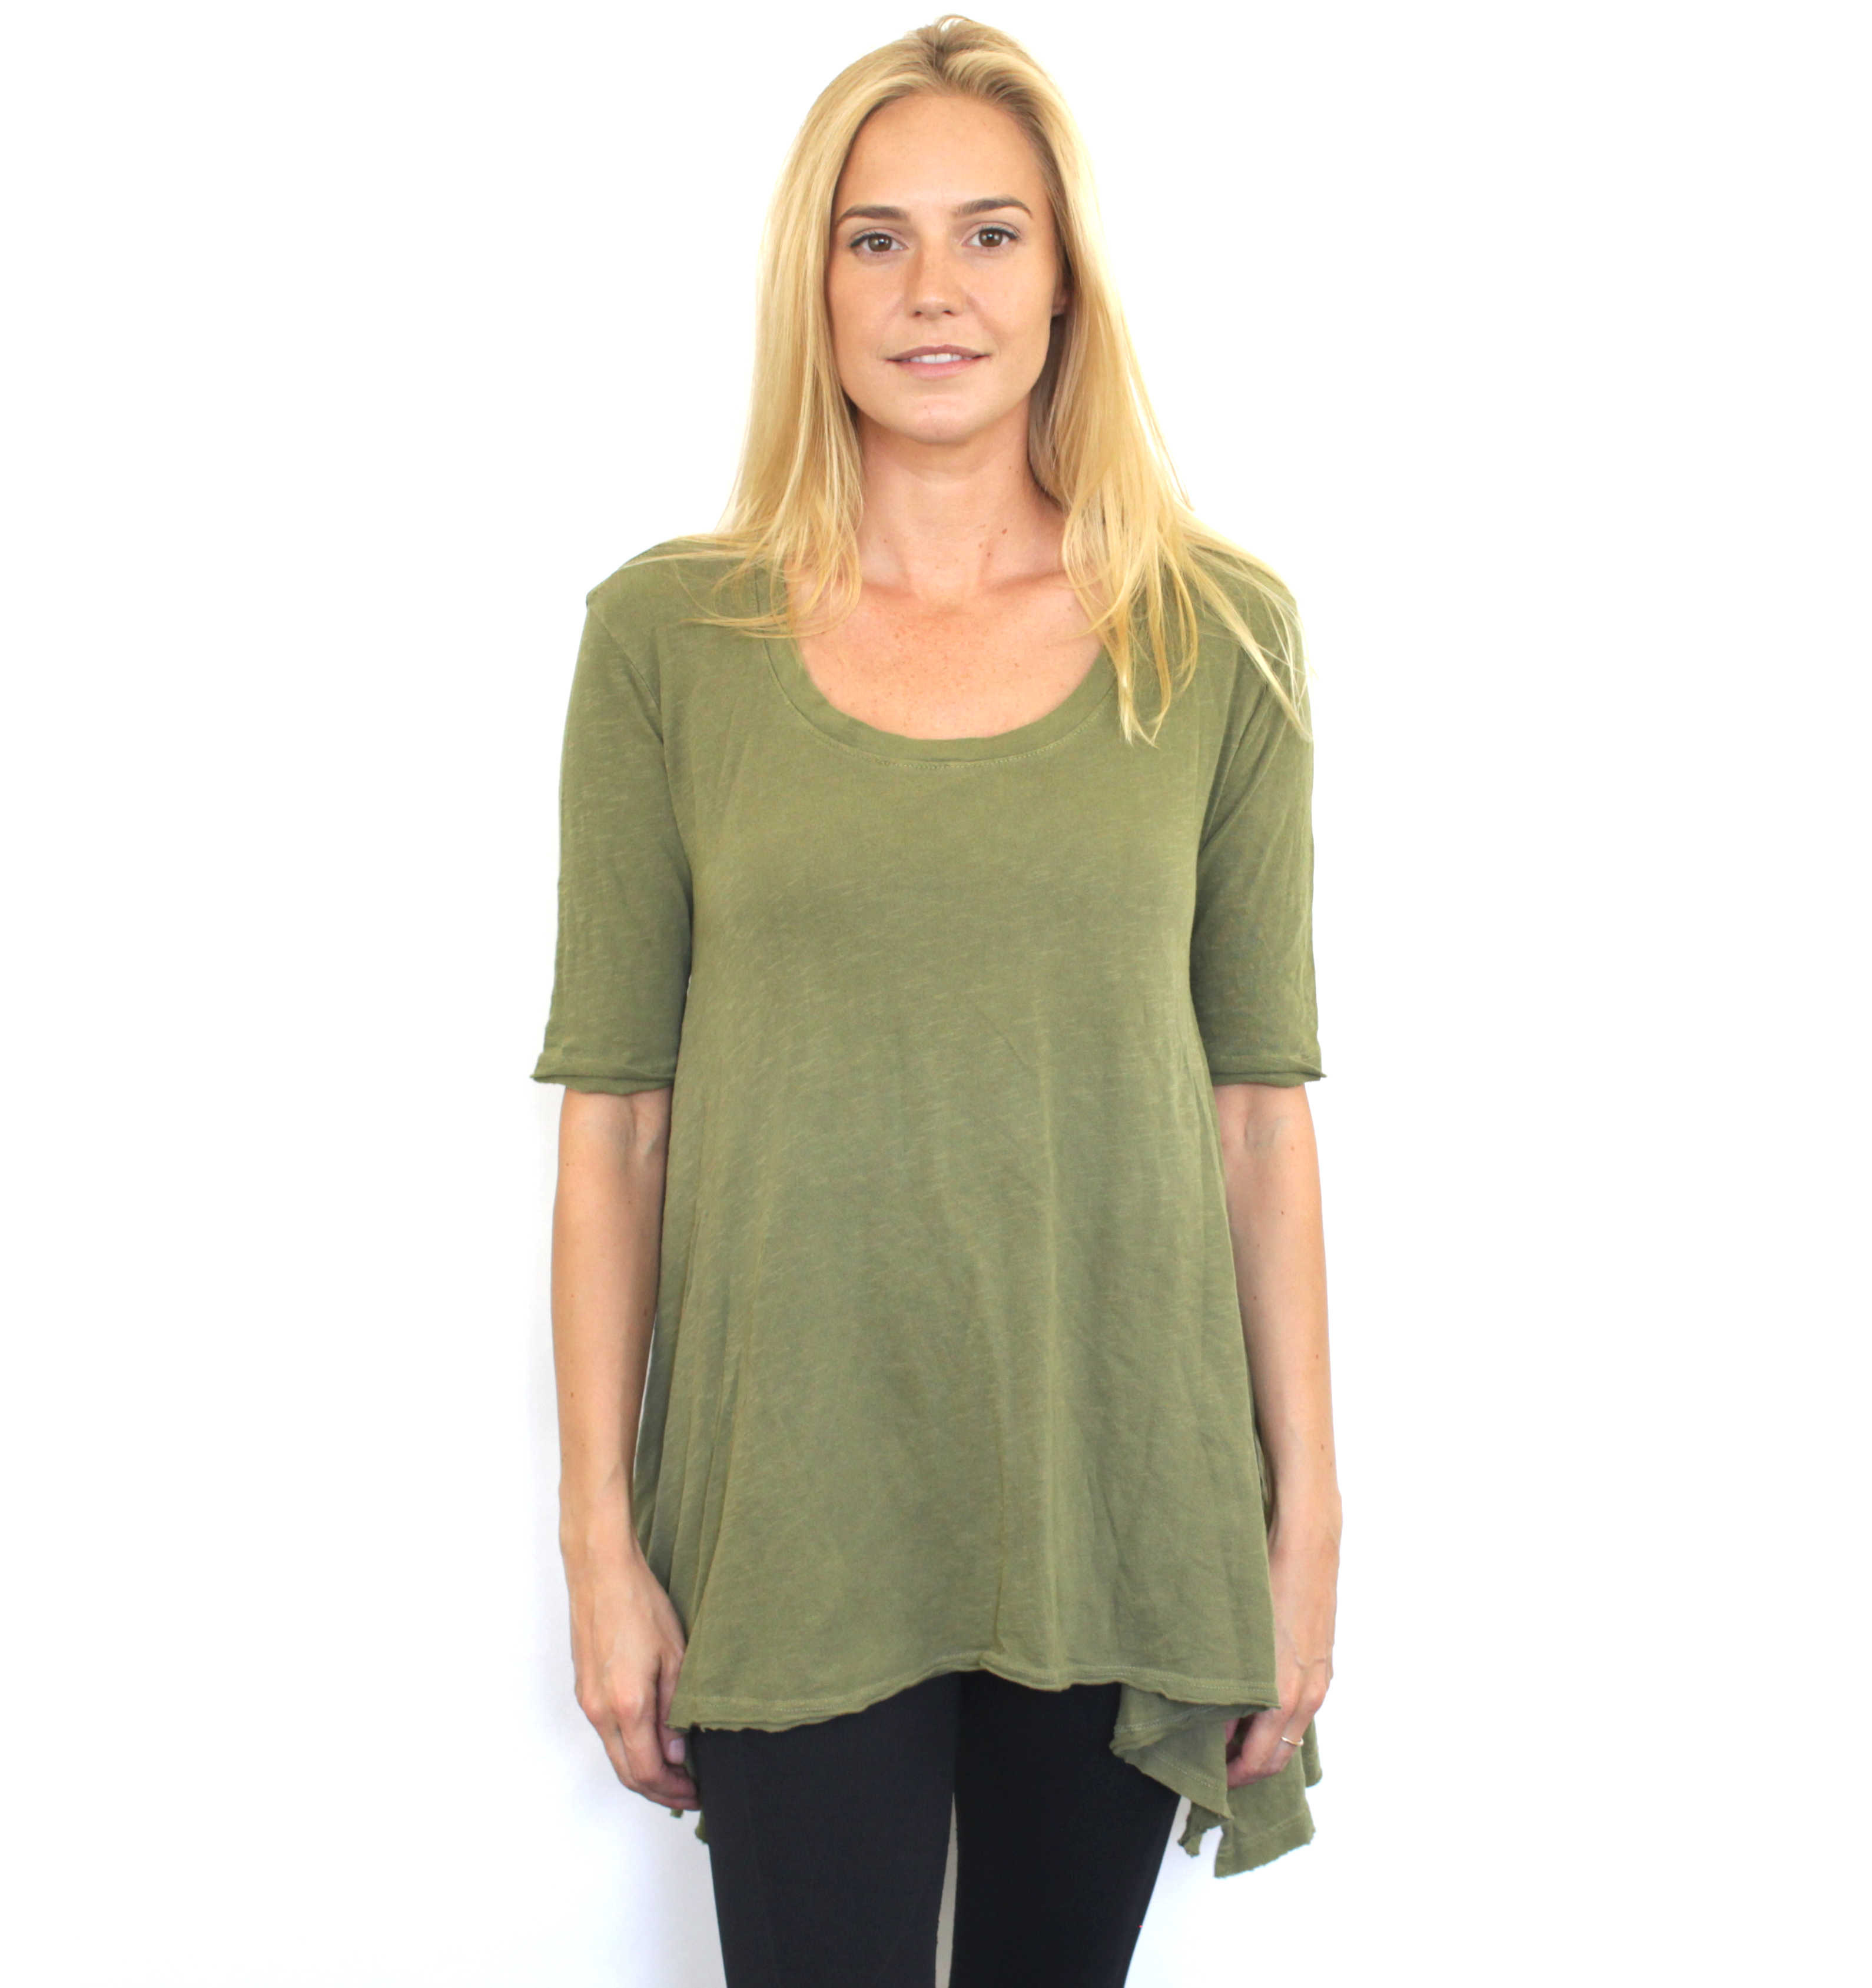 New With Tags Free People Womens Olive Green Melrose Swing Tee Cotton Top $68